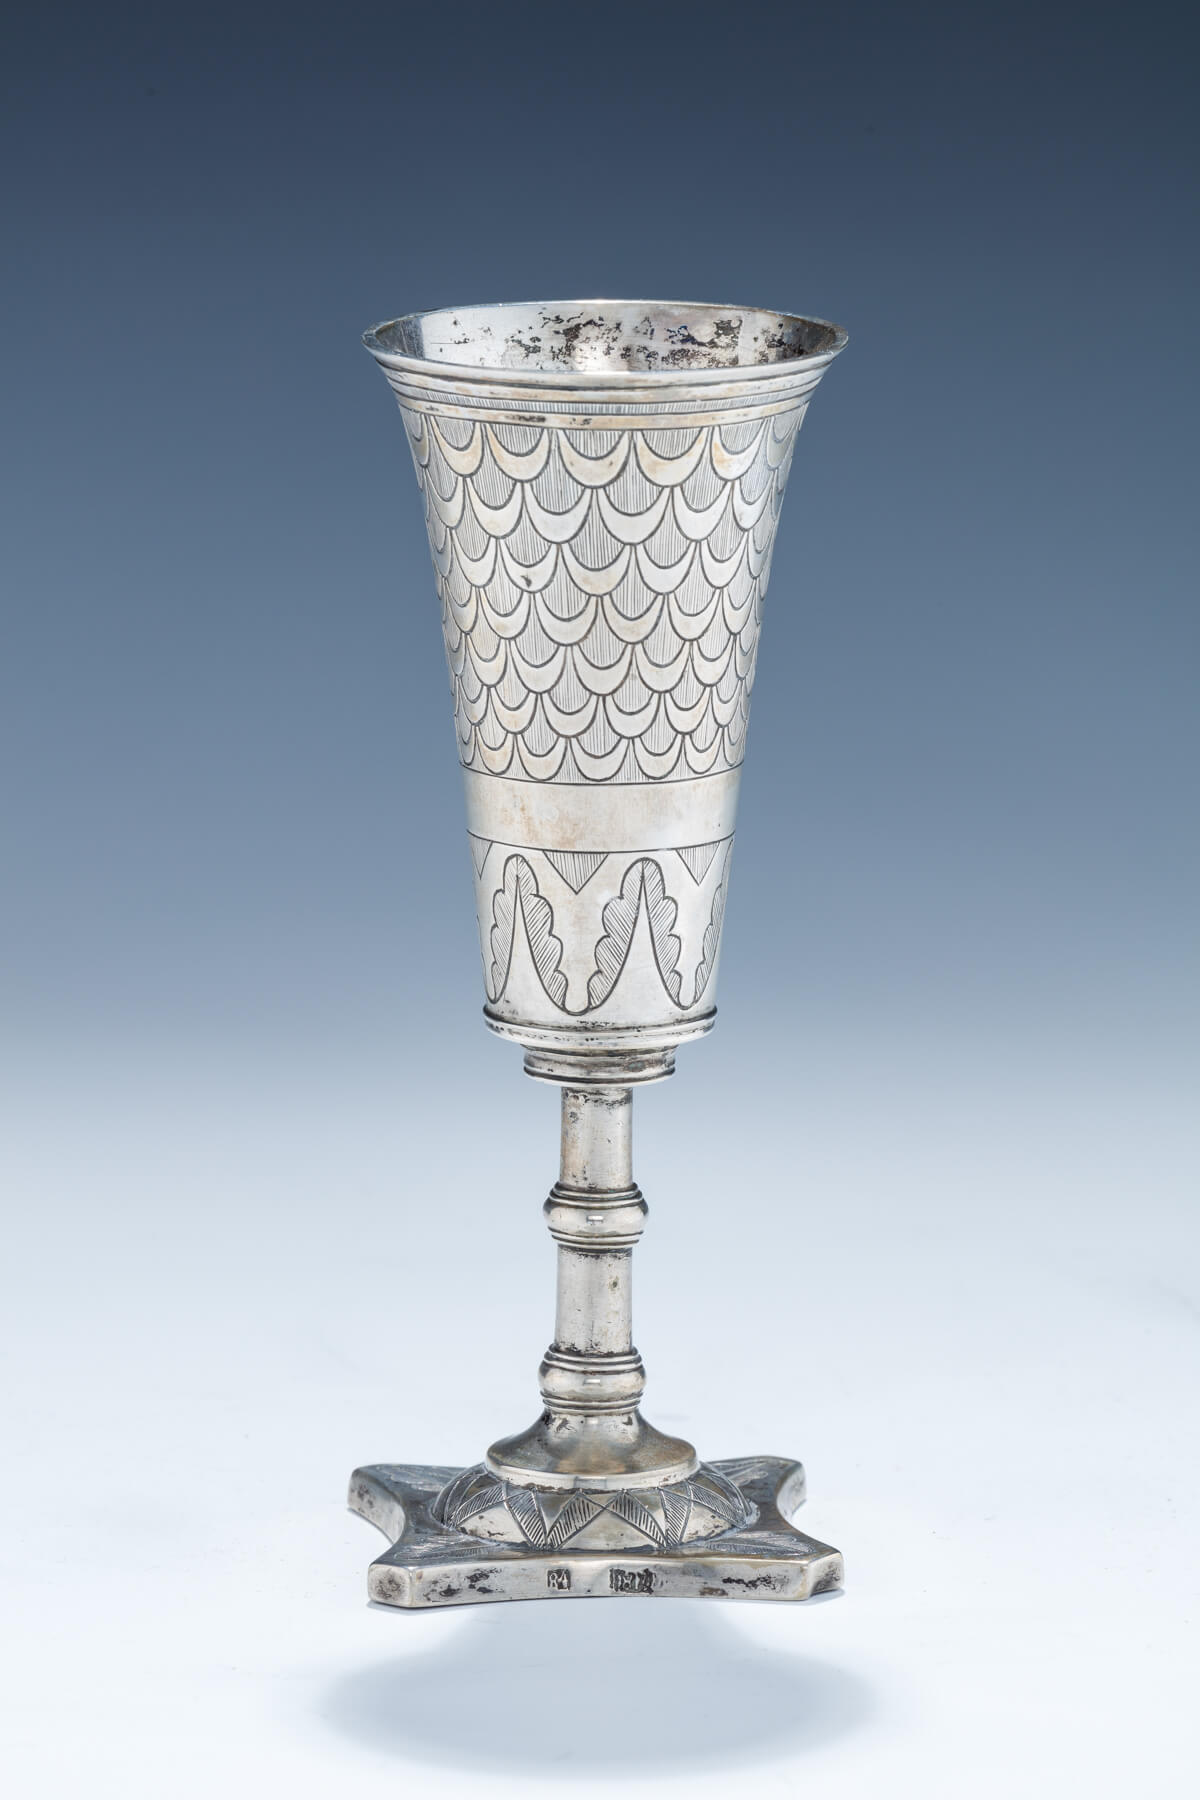 56. A Large Silver Kiddush Goblet